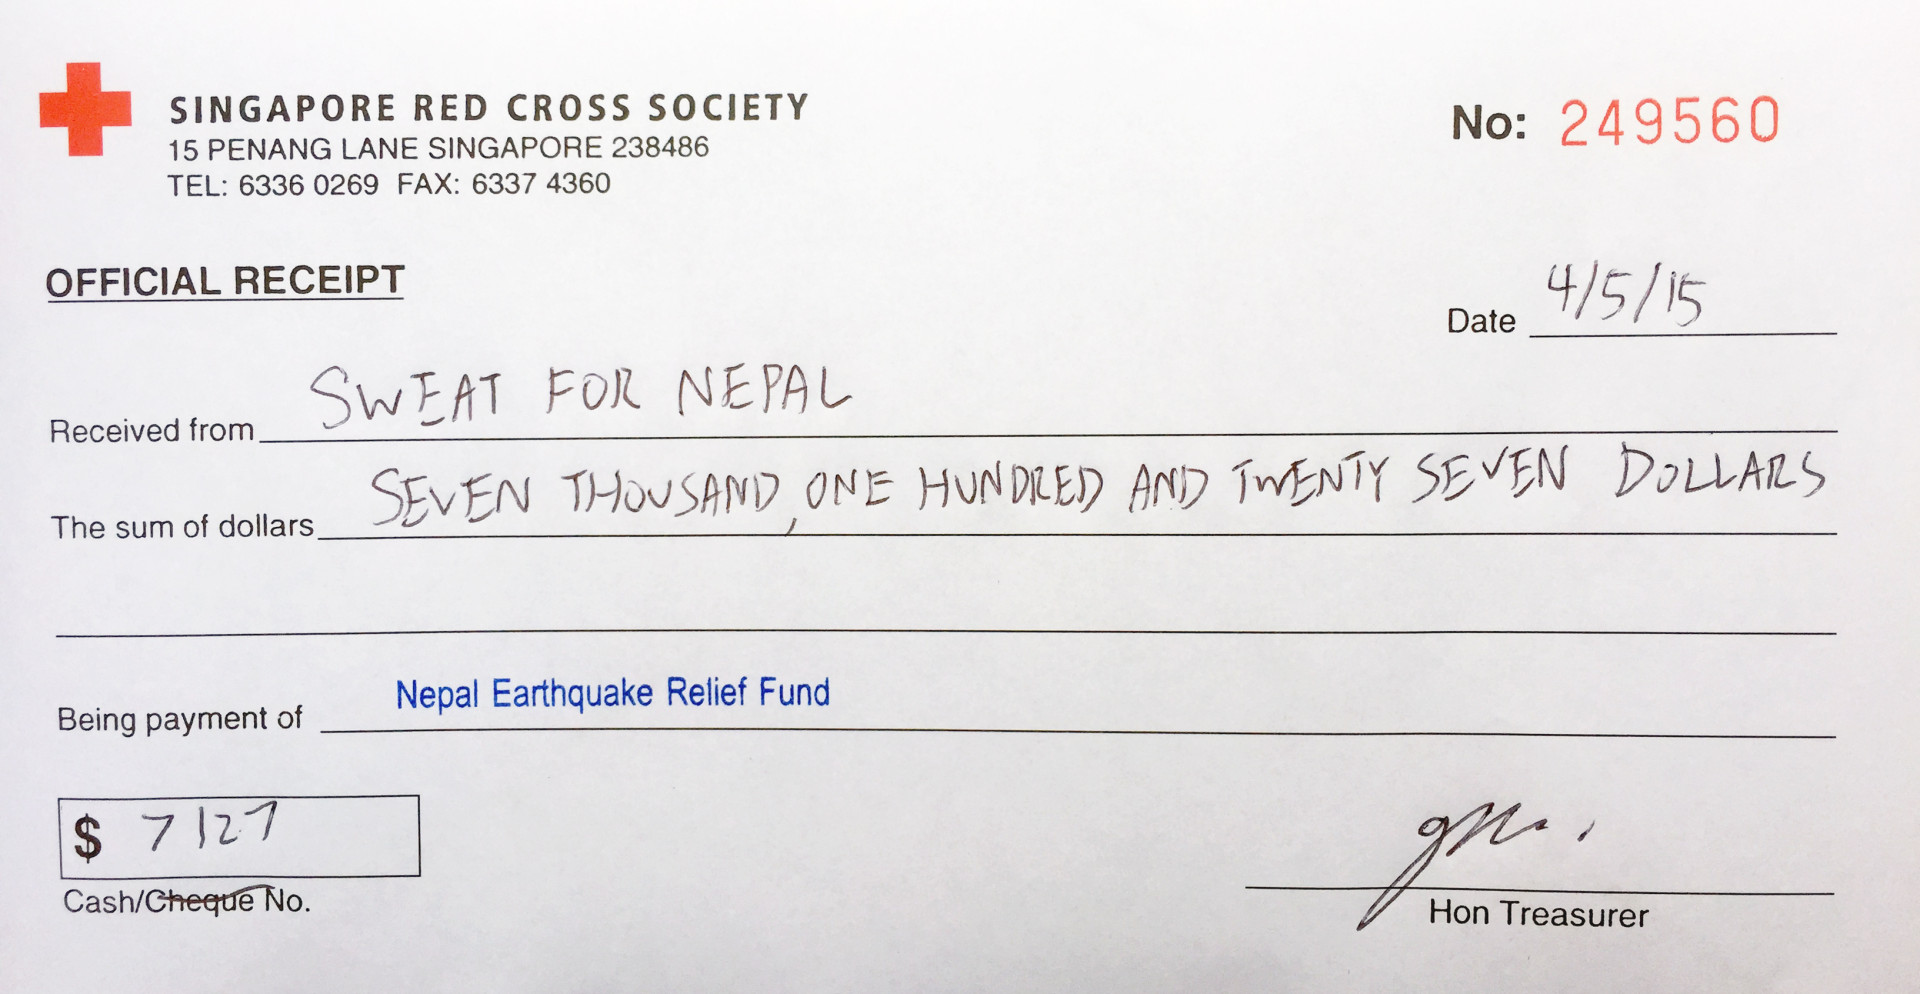 Sweatfornepal charity contribution to singapore red cross society receipt